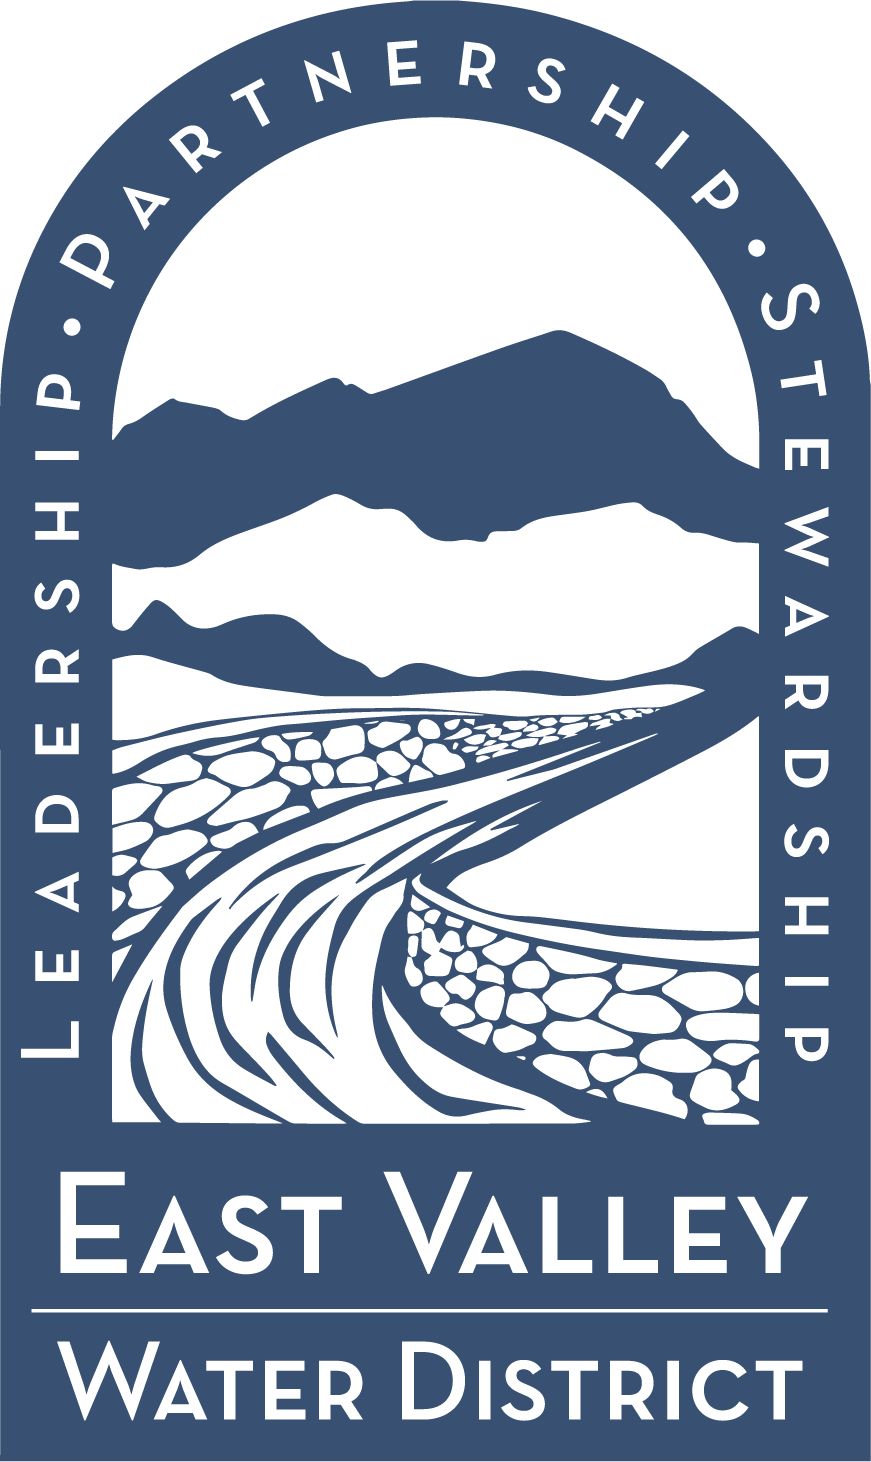 East Valley Water District logo